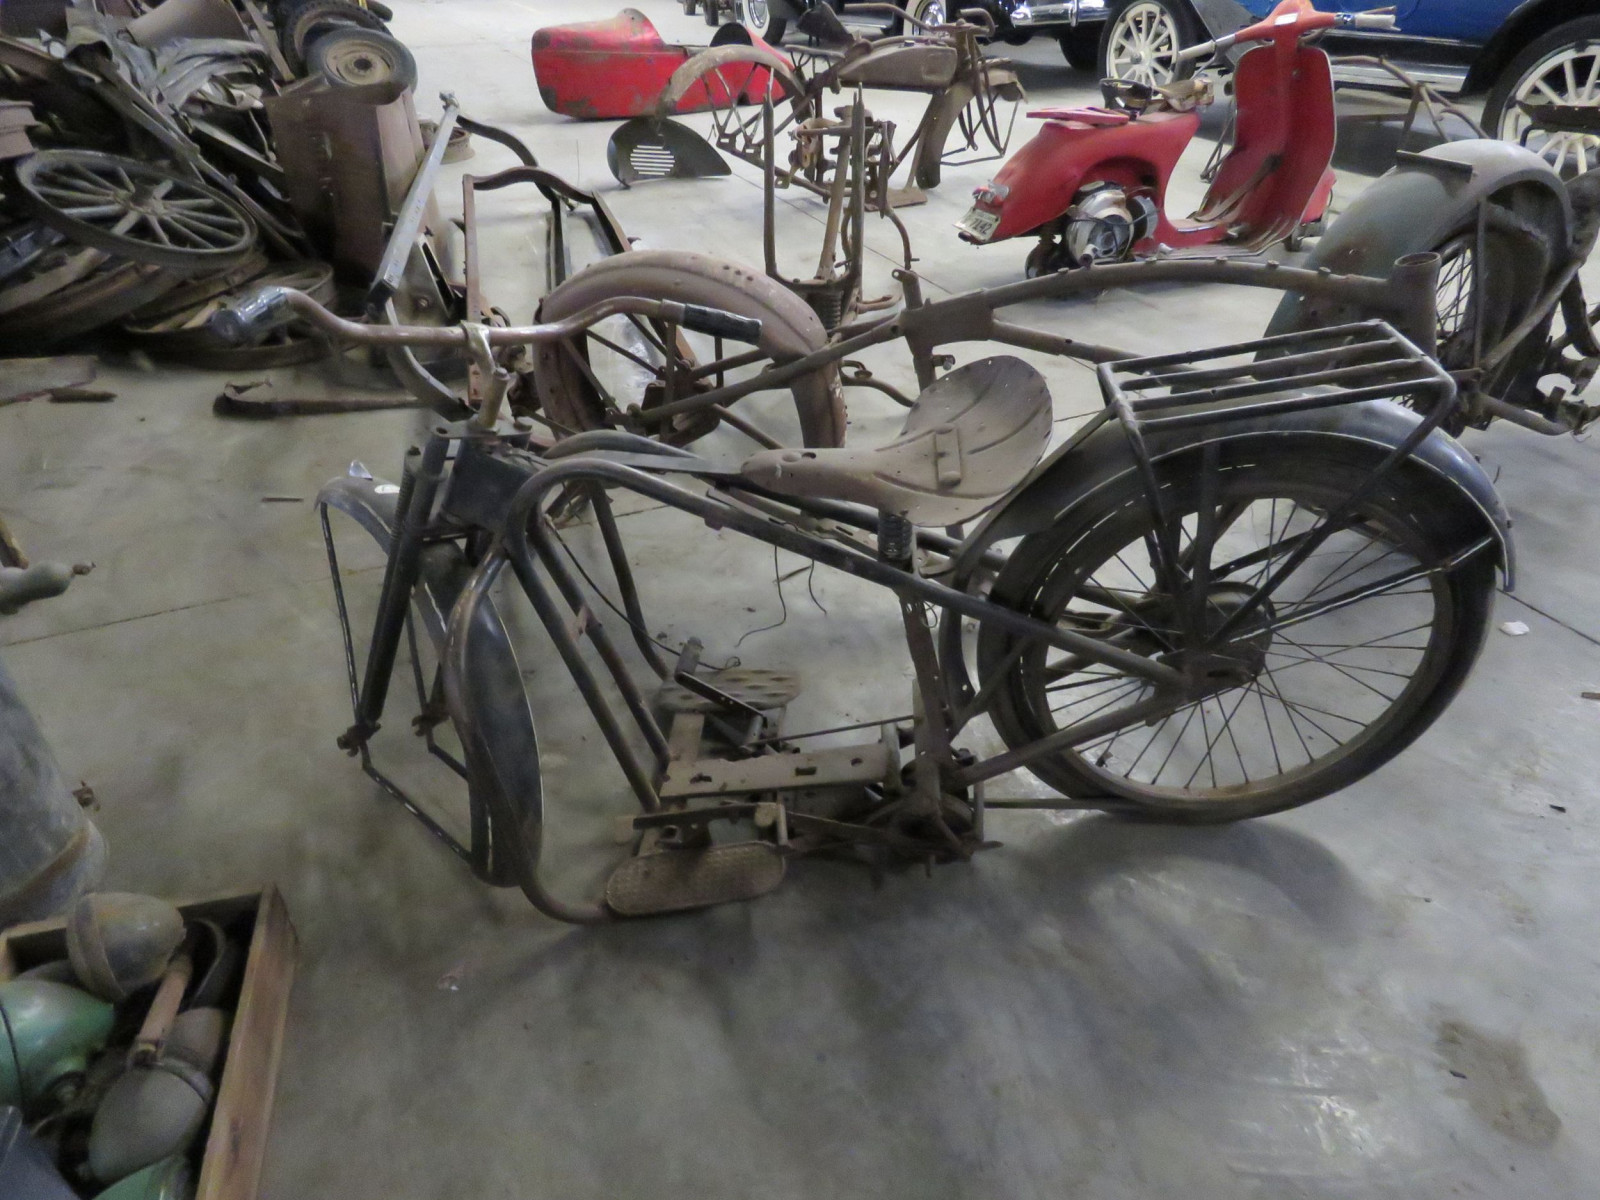 Vintage Servicycle Motorcycle Project - Image 4